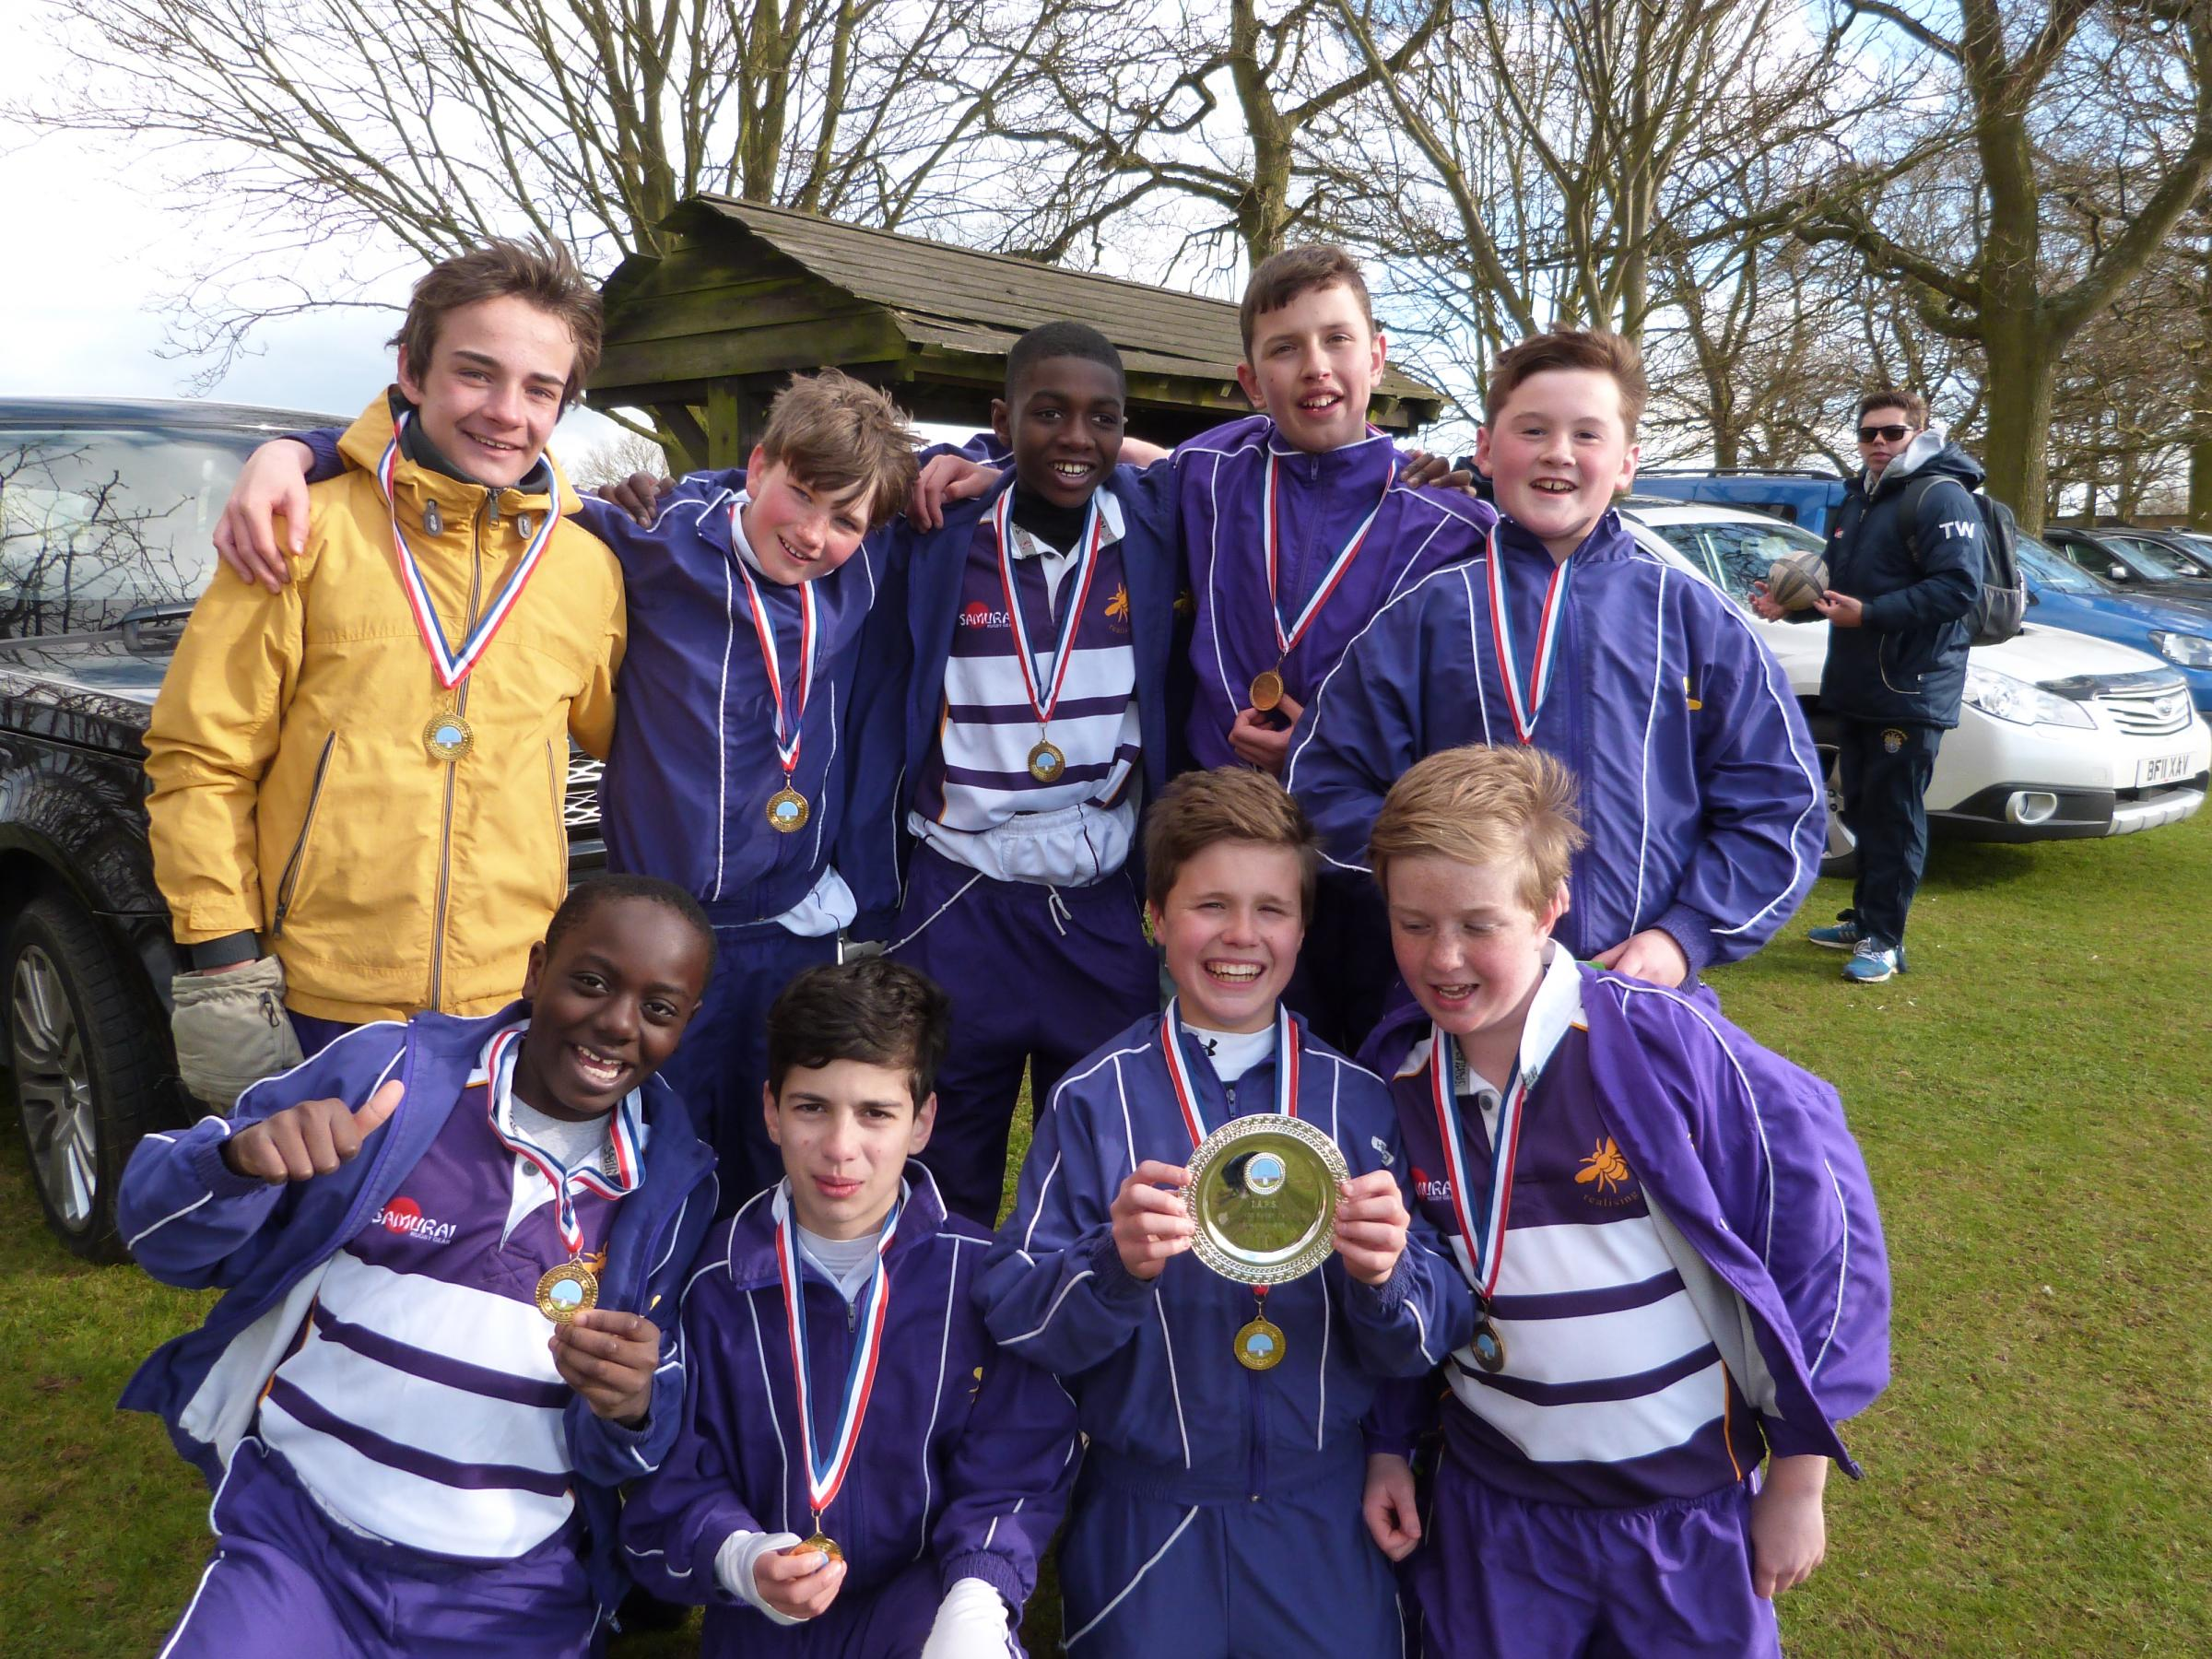 News Shopper: The Bickley Park boys celebrate